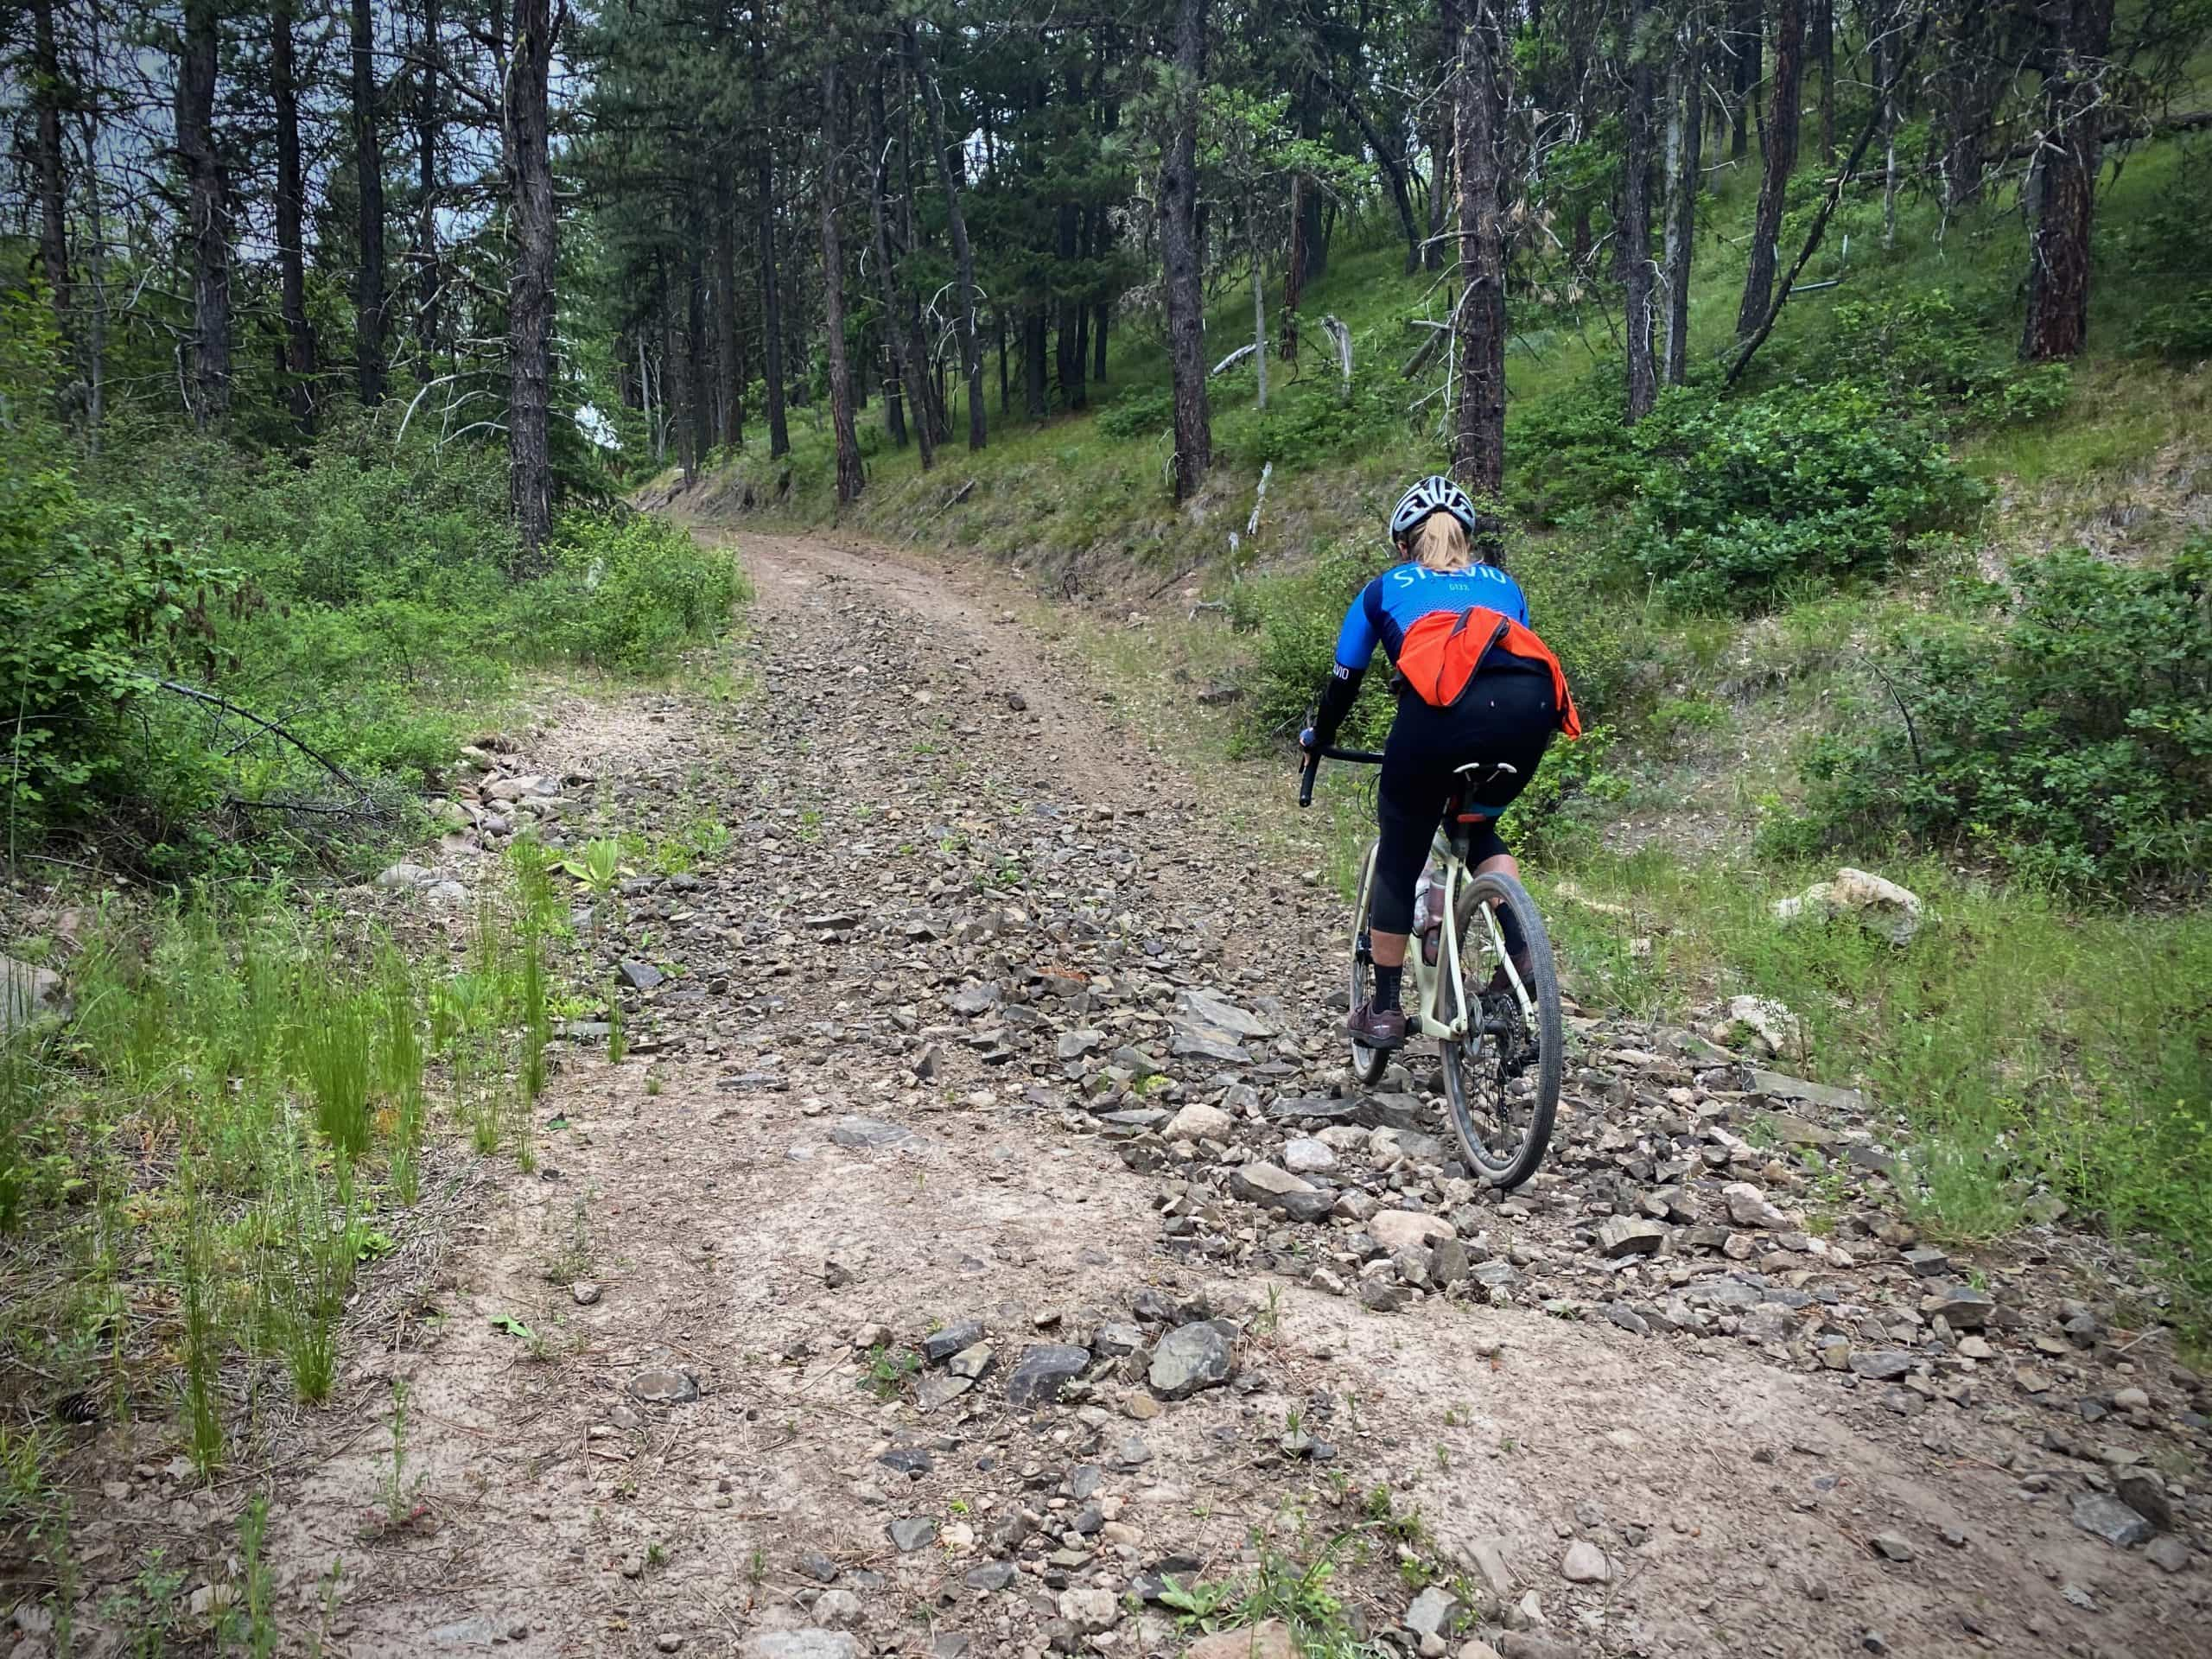 Woman cyclists making way across dry, rocky stream bed near Mt. Hood National Forest.